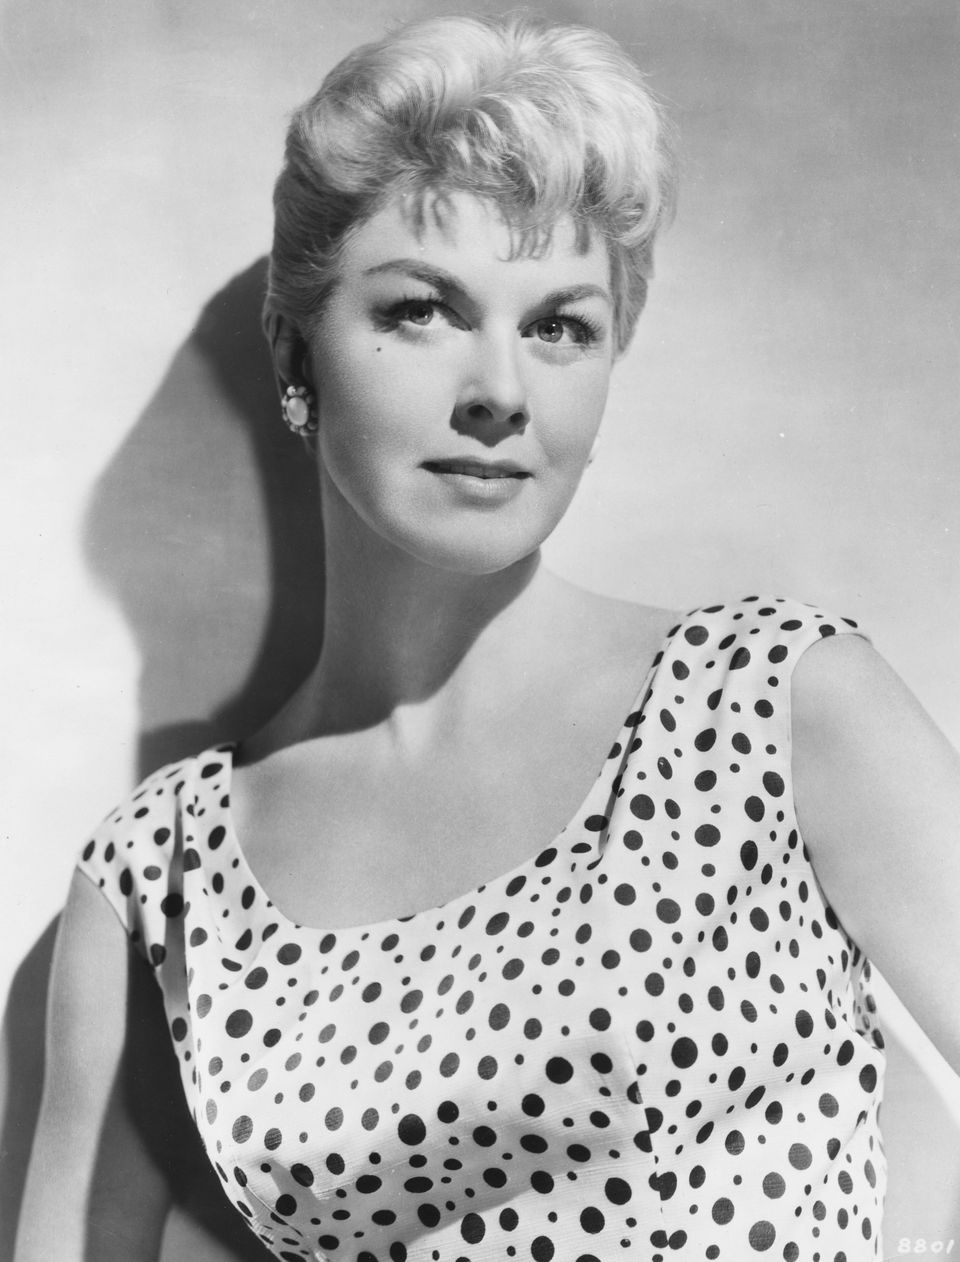 Westlake Legal Group 5cd97cbc2100005900802515 A Look Back At Doris Day's Life And Career In Photos